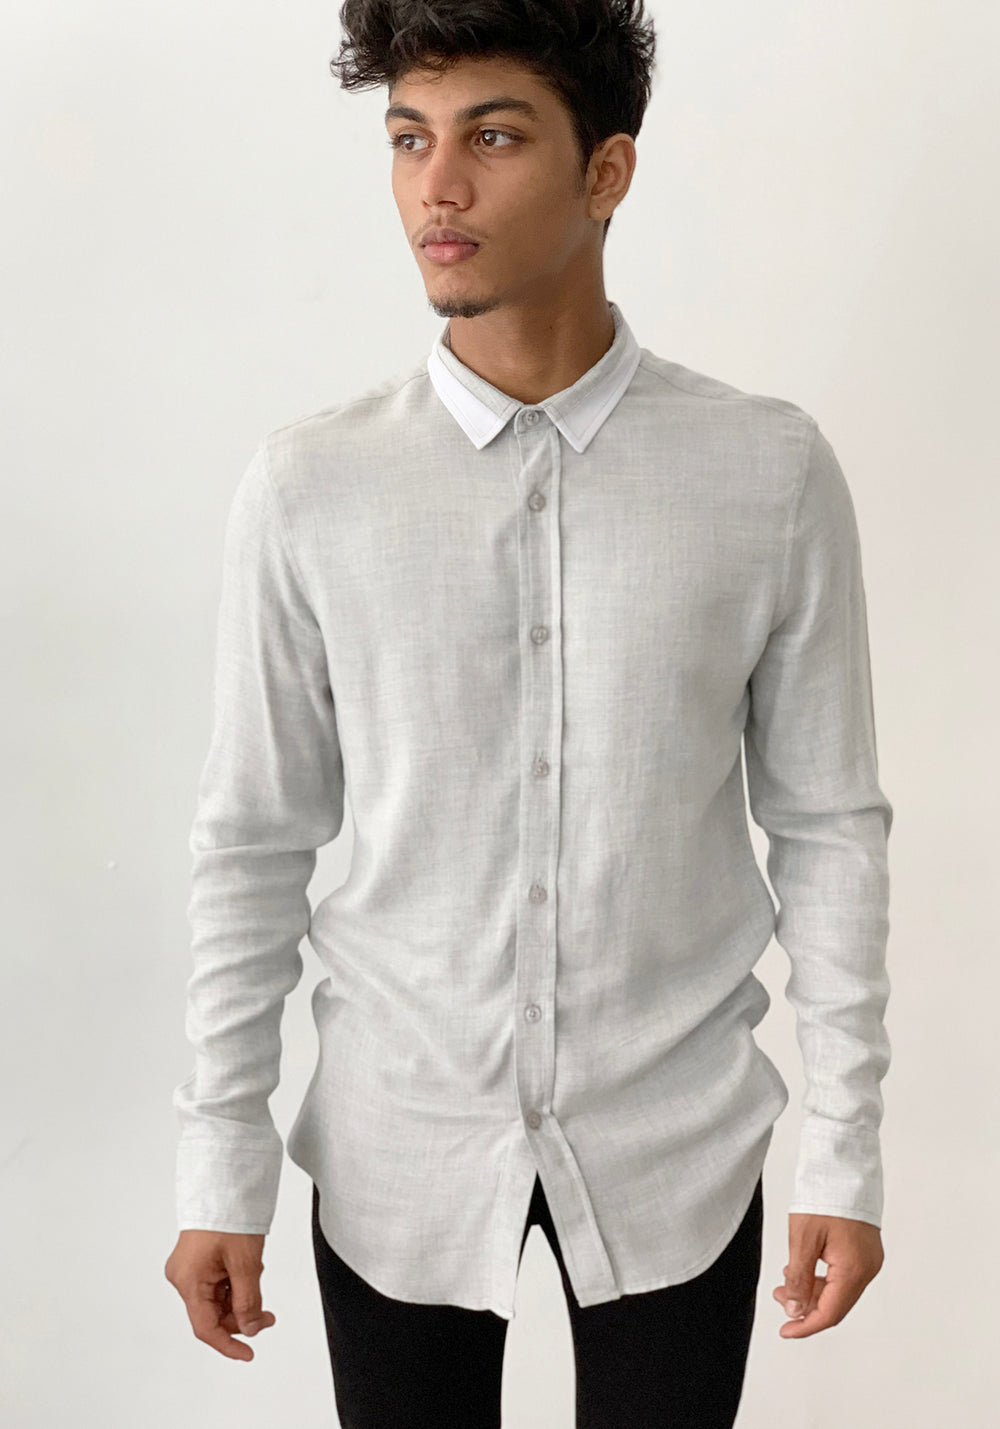 LONG SLEEVED SHIRT WITH CONTRAST COLLAR-GREY